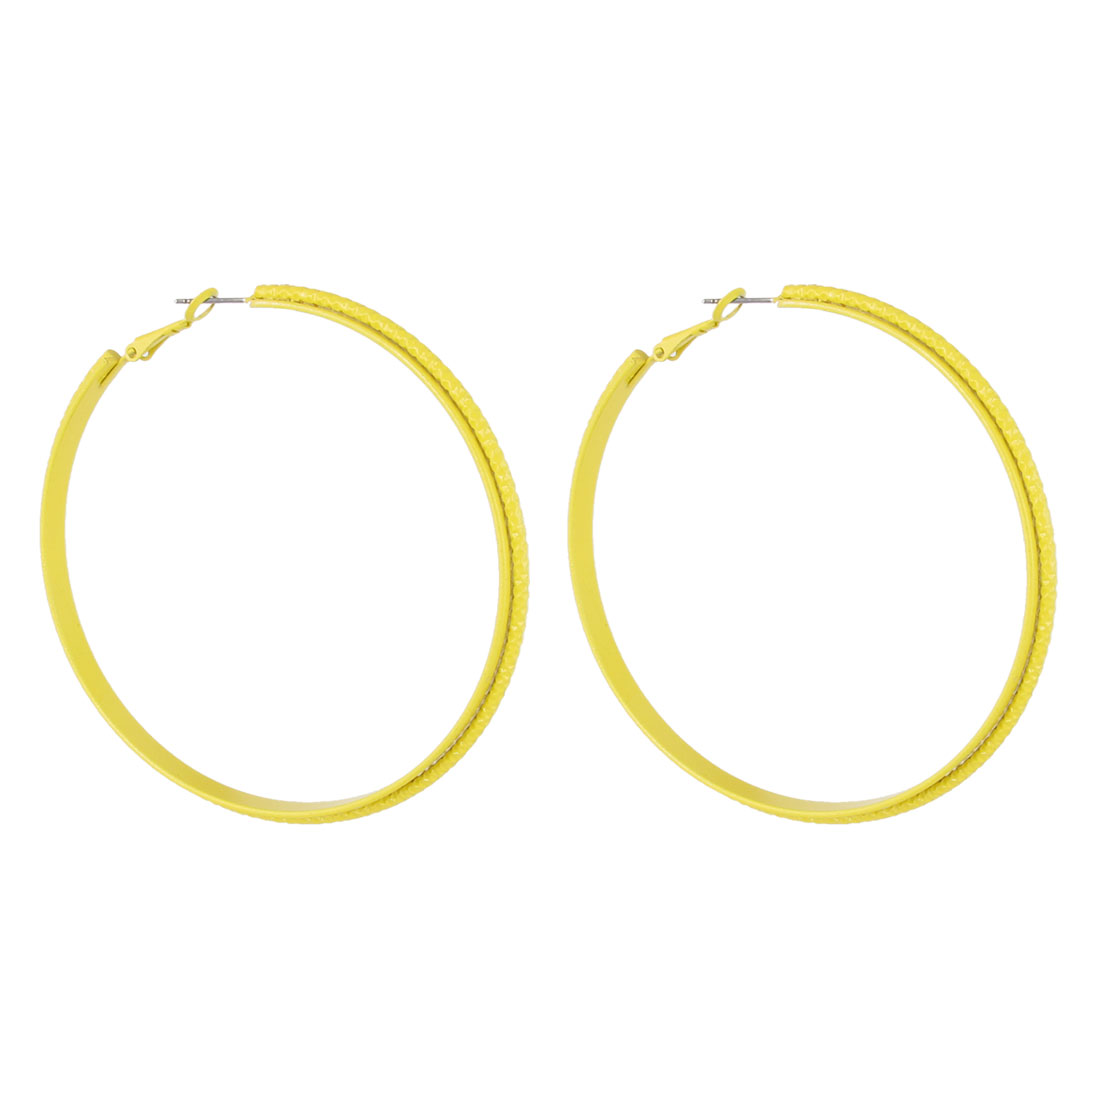 "Lady Women Metal Double Deck Textured Circle Hoop Pierced Earrings Yellow 2.2"" Dia Pair"